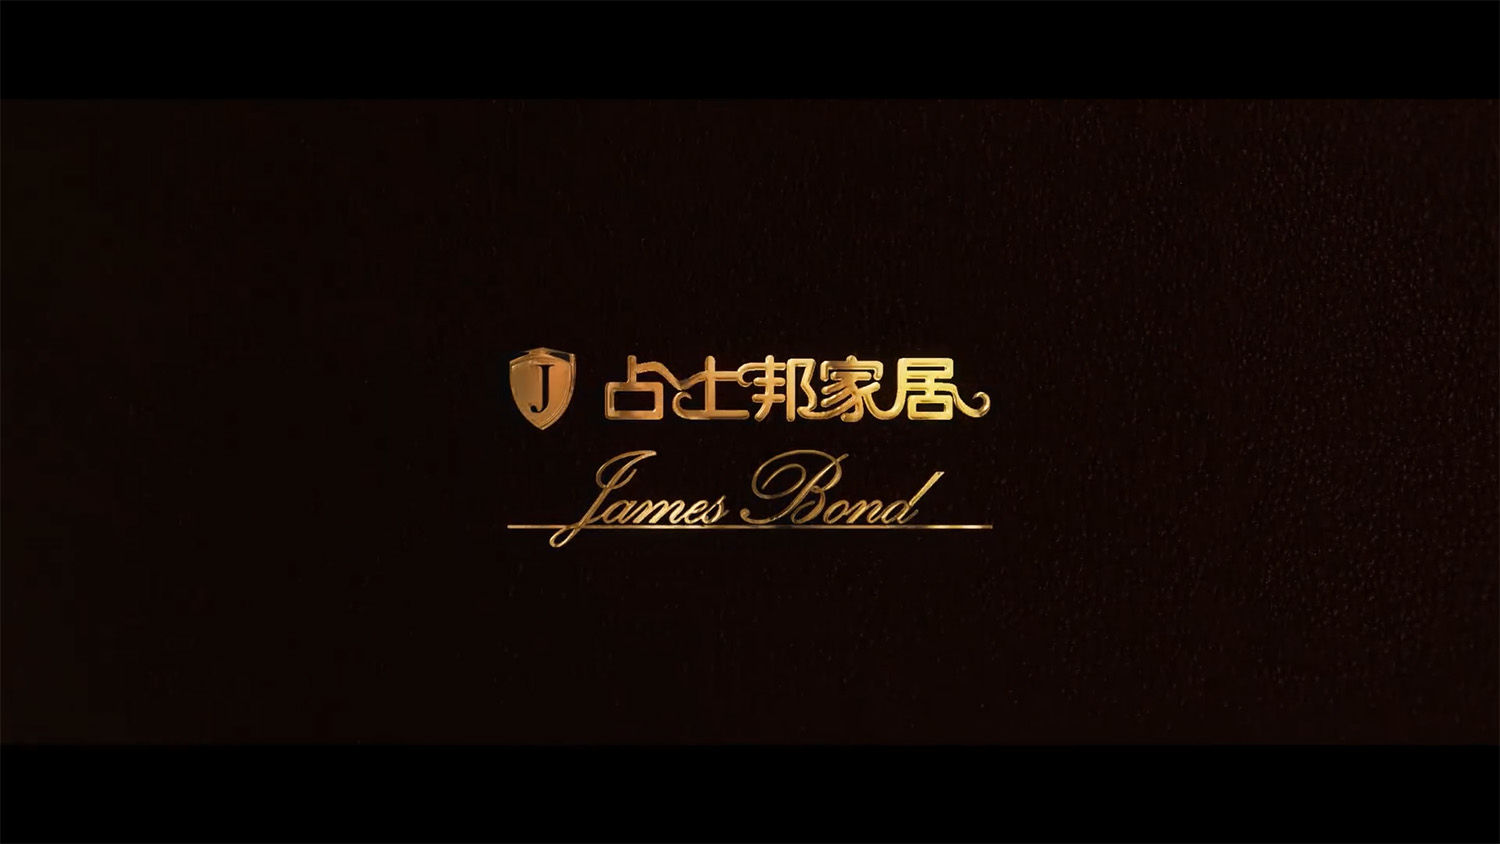 James Bond corporate videos